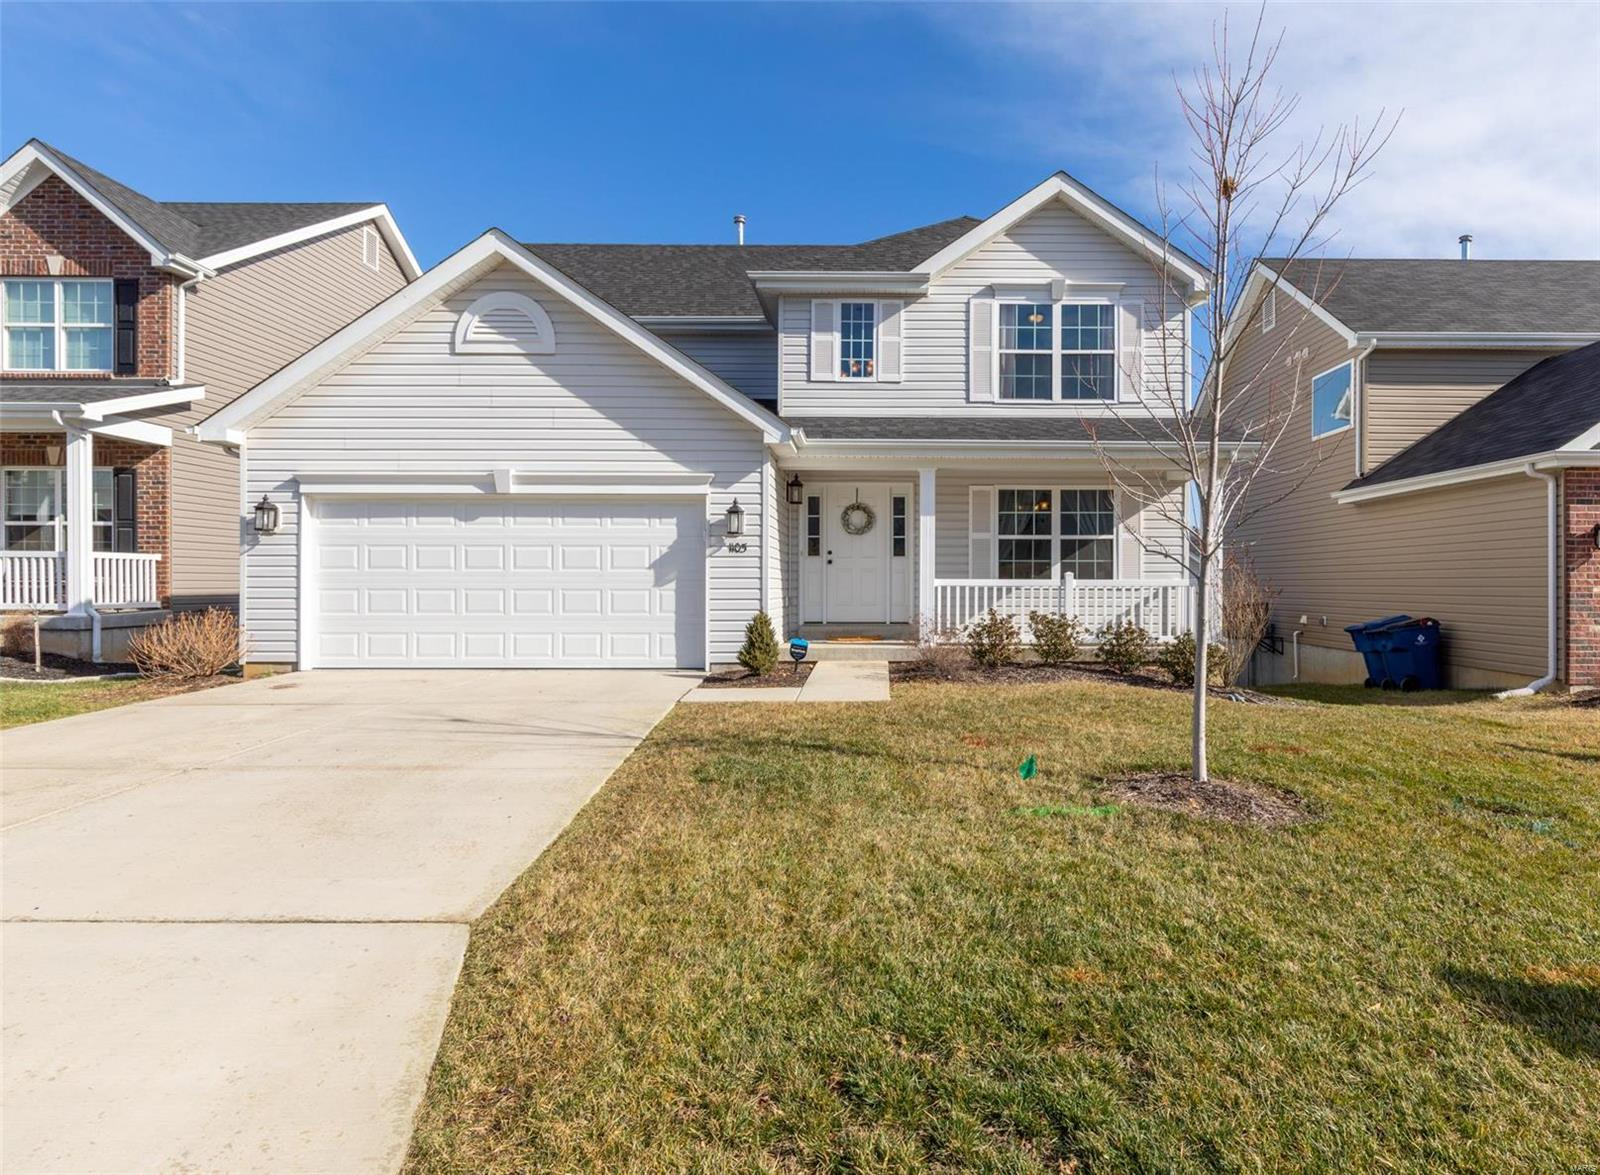 1105 Winding Bluffs Way Property Photo - Unincorporated, MO real estate listing